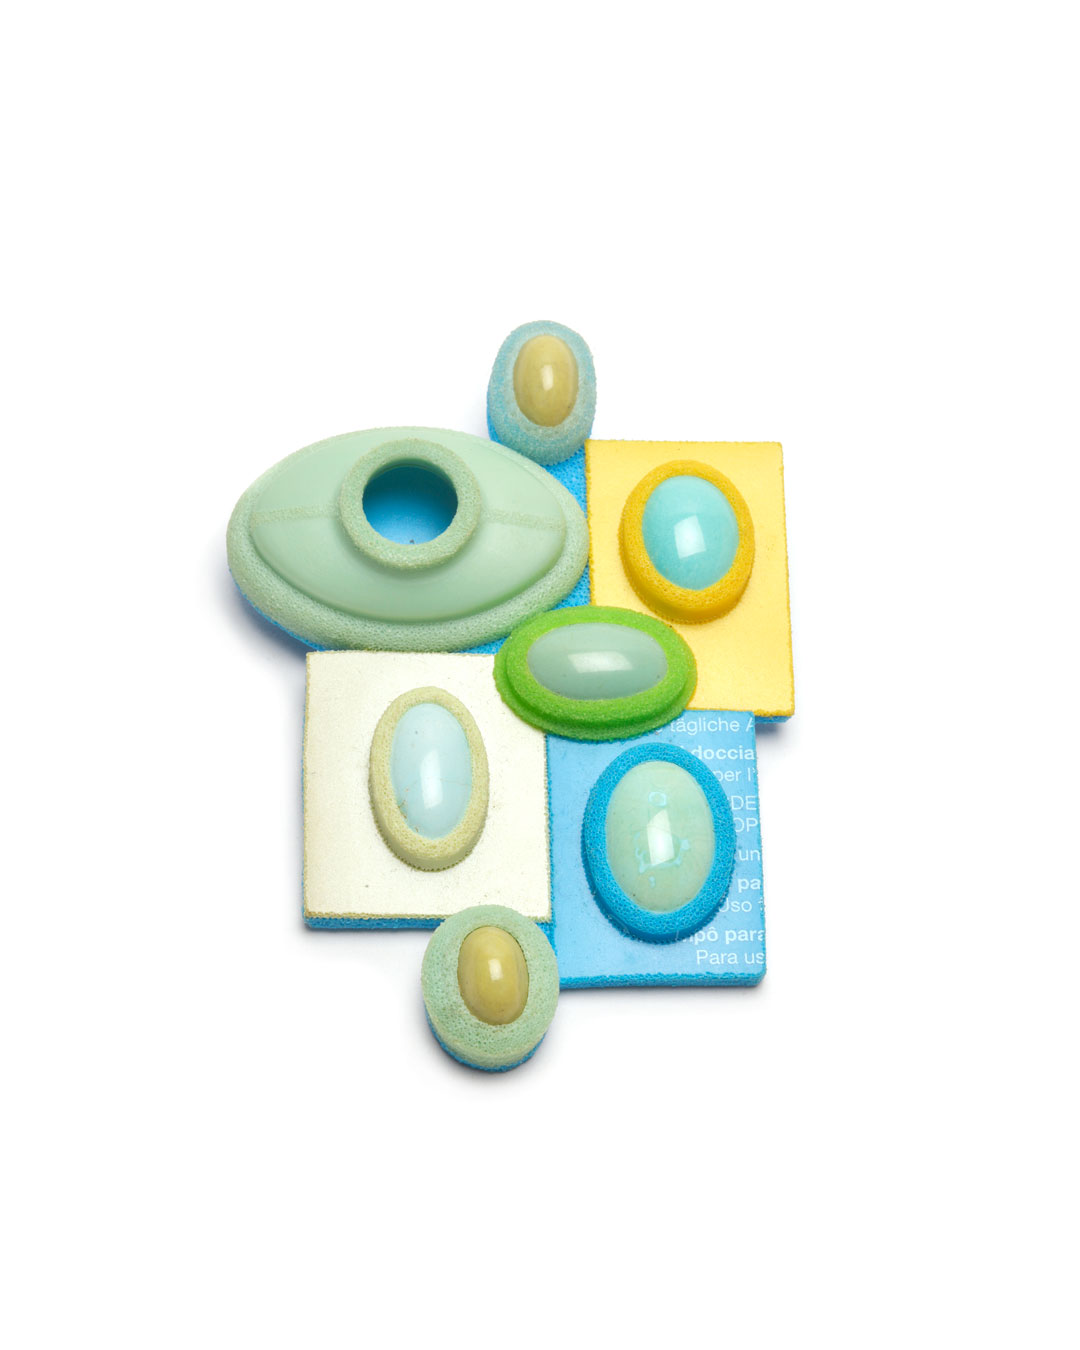 Ute Eitzenhöfer, Precious Mix 1, 2004, brooch; plastic (from packaging), turquoise, serpentine, silver, 80 x 60 x 18 mm, €1450